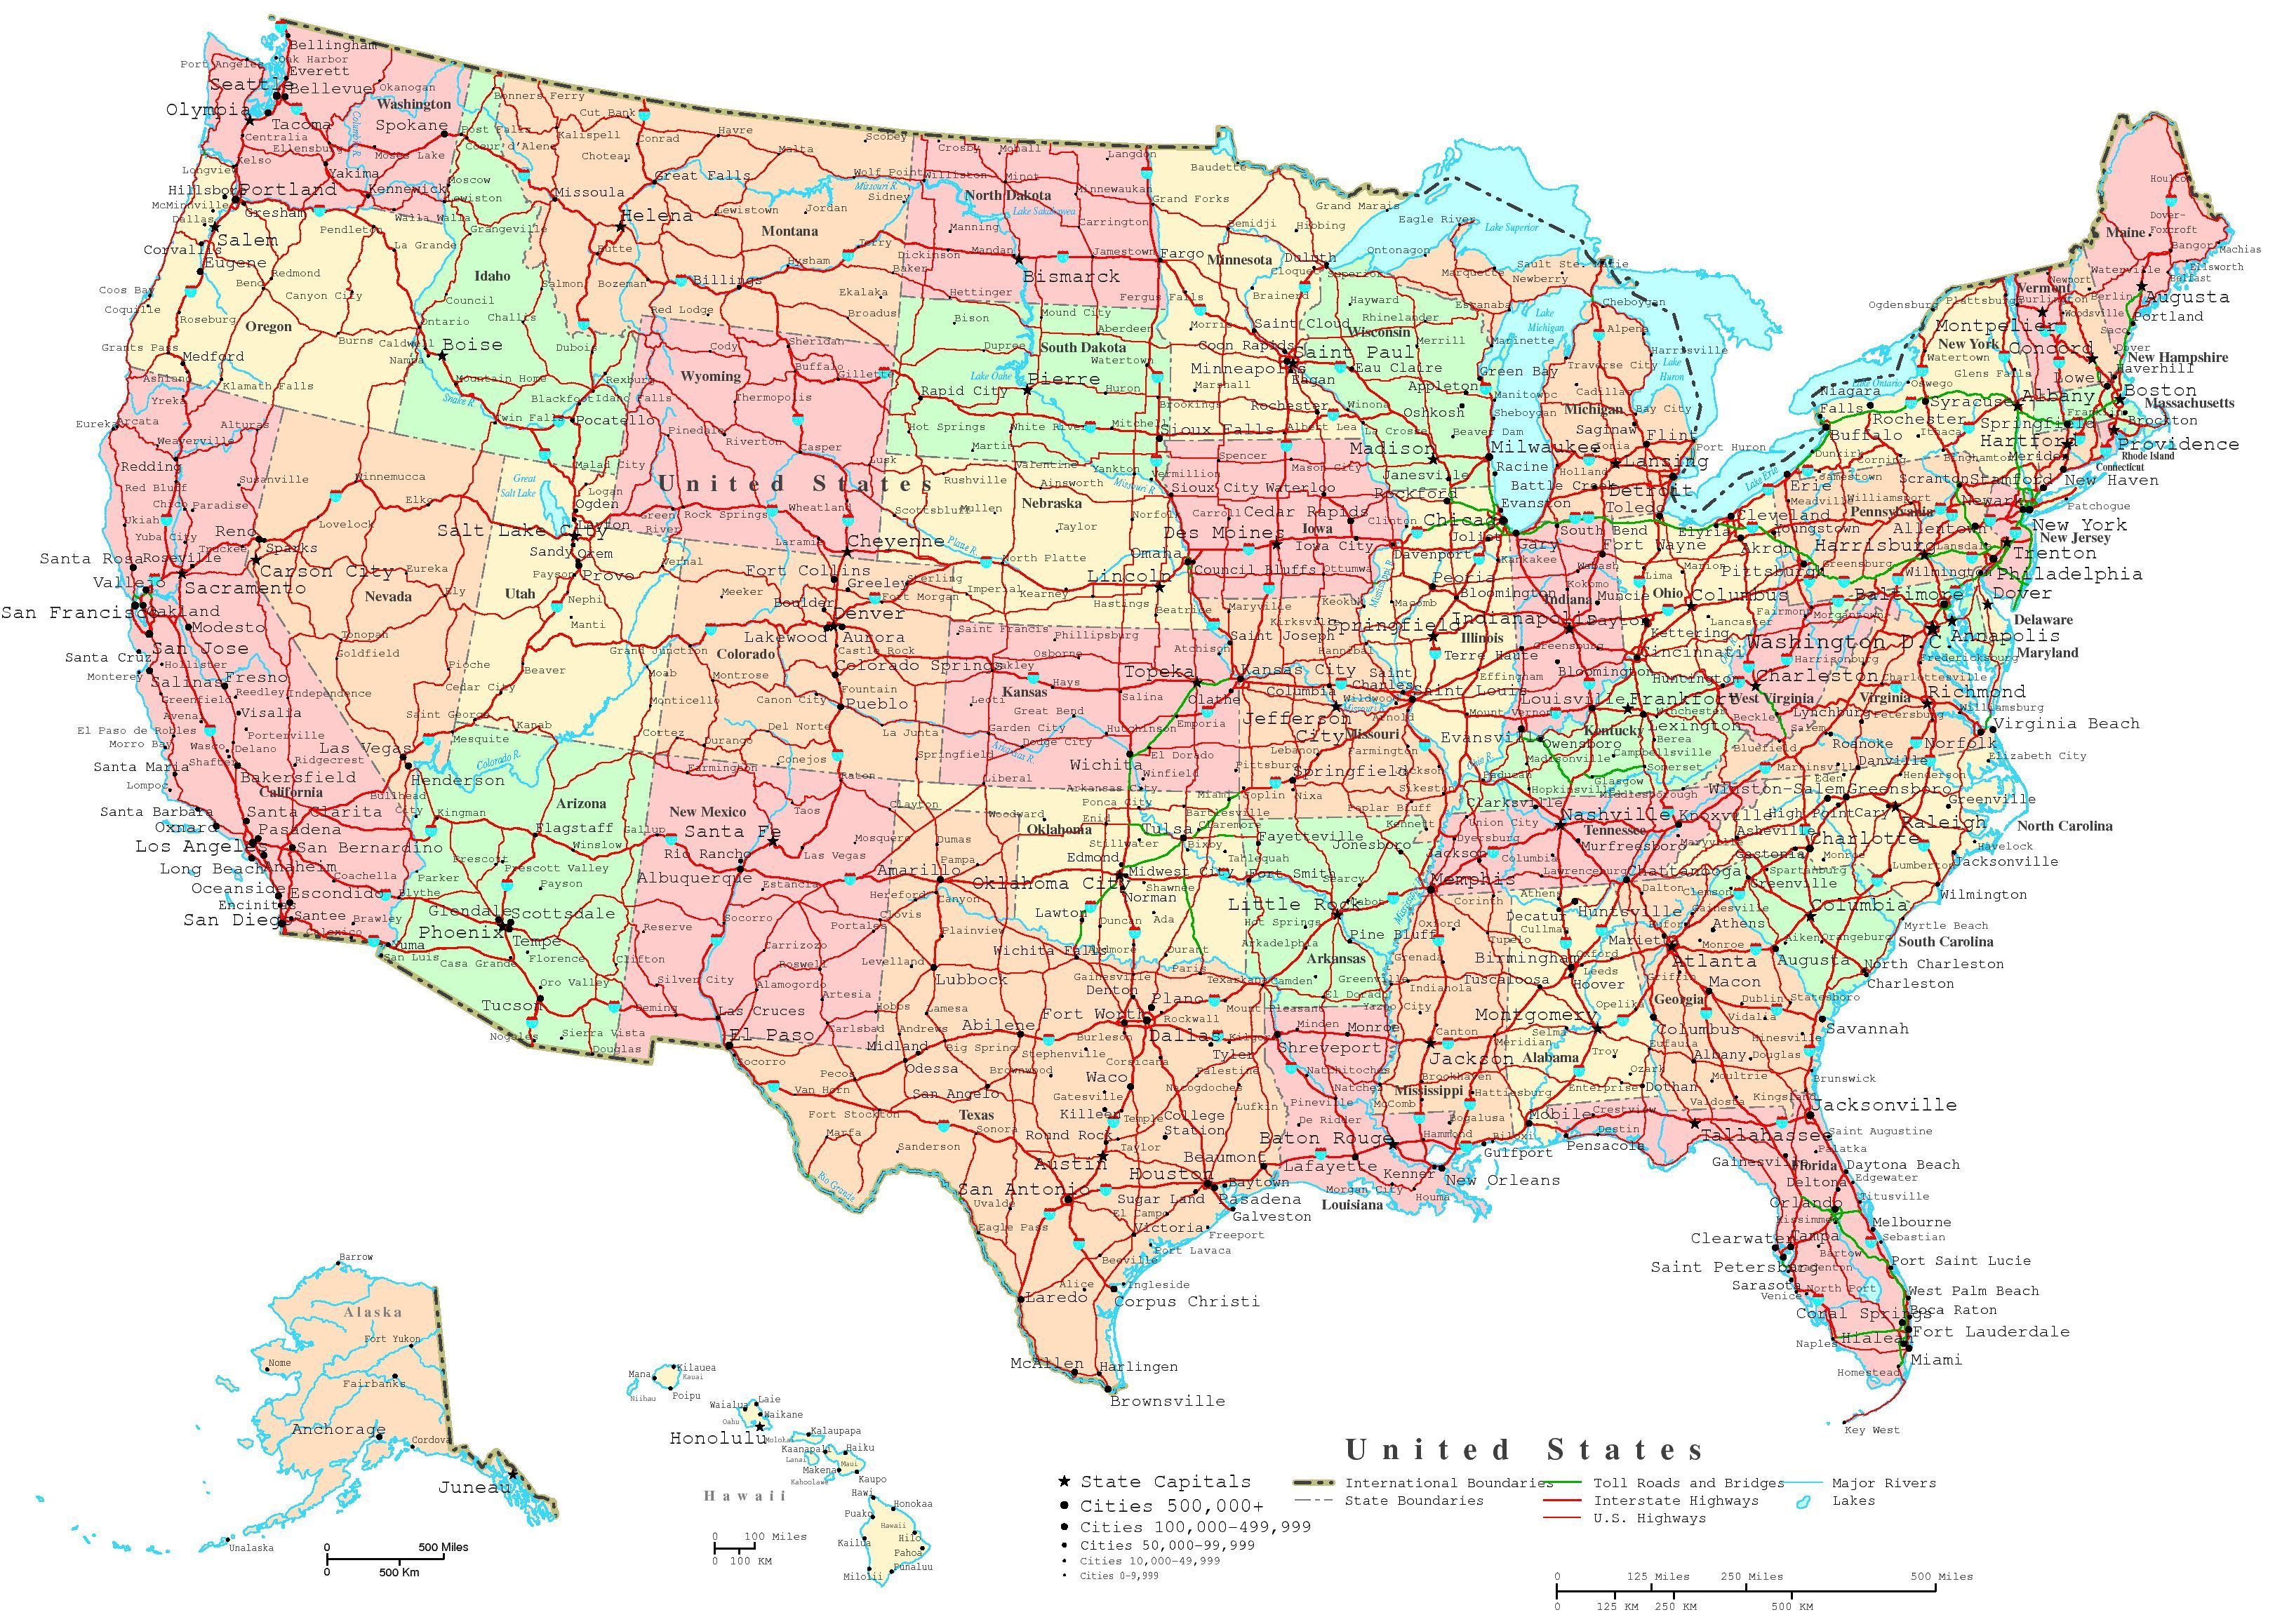 Map Of The Us States | Printable United States Map | Jb's Travels - Free Printable Map Of The United States